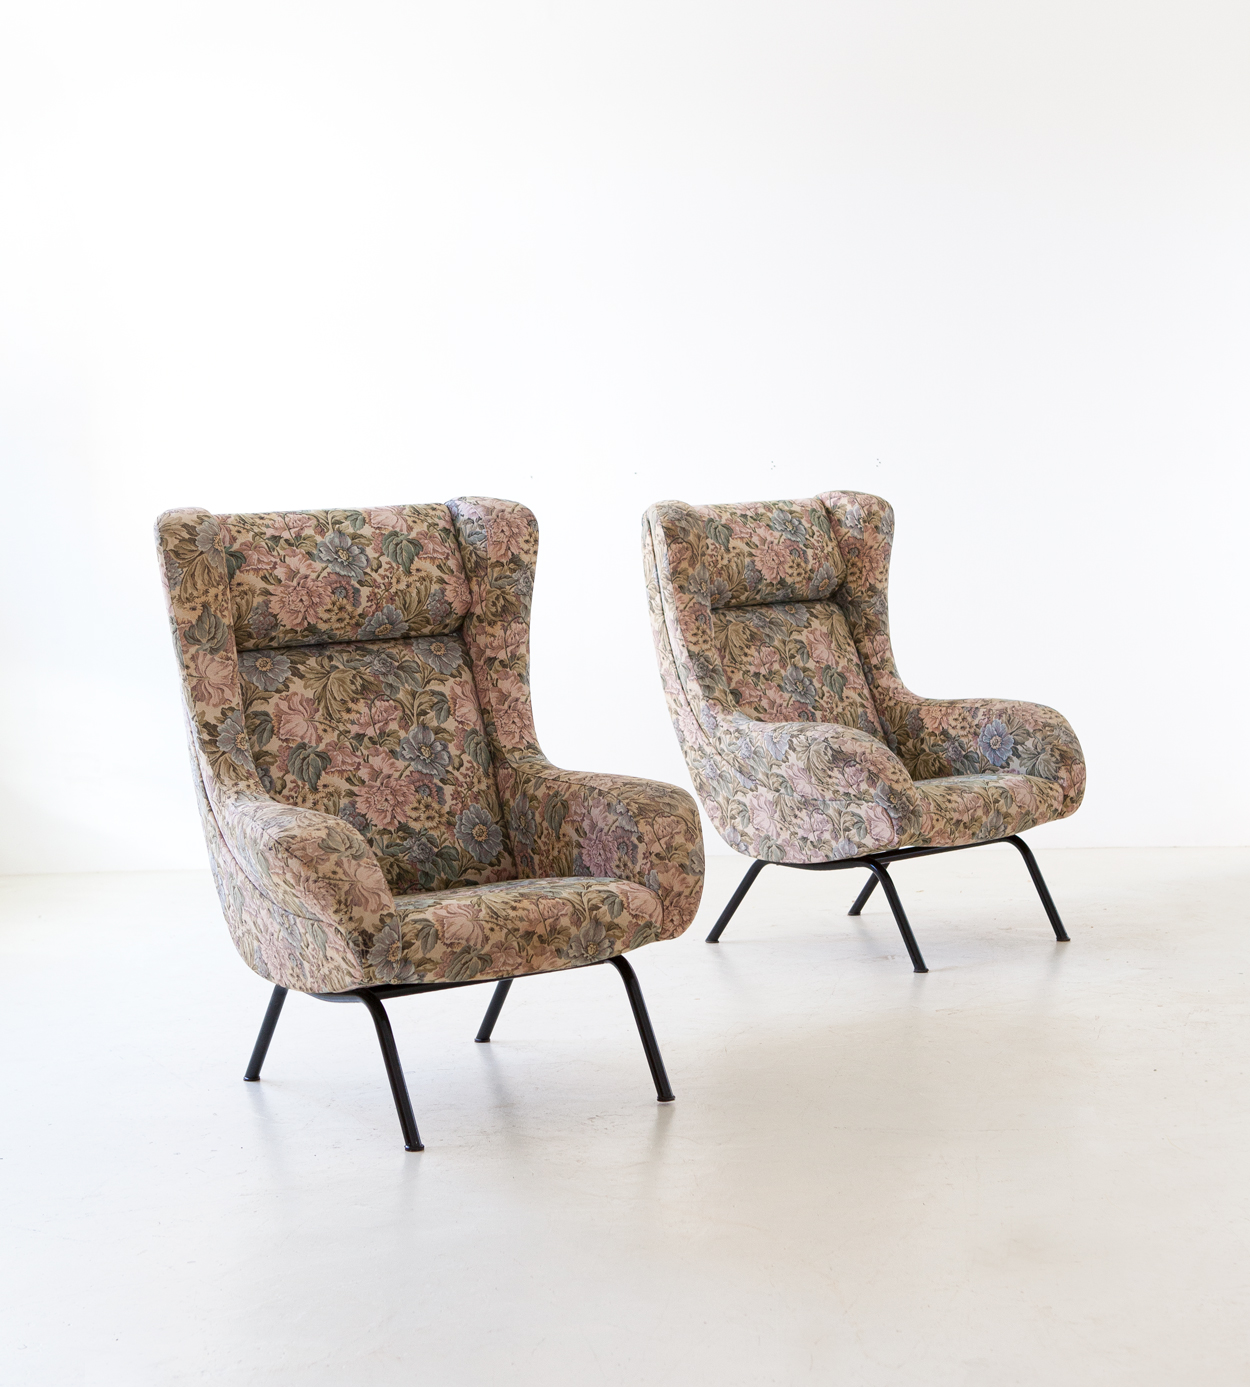 pair-of-italian-lounge-armchairs-with-ears-1-se326